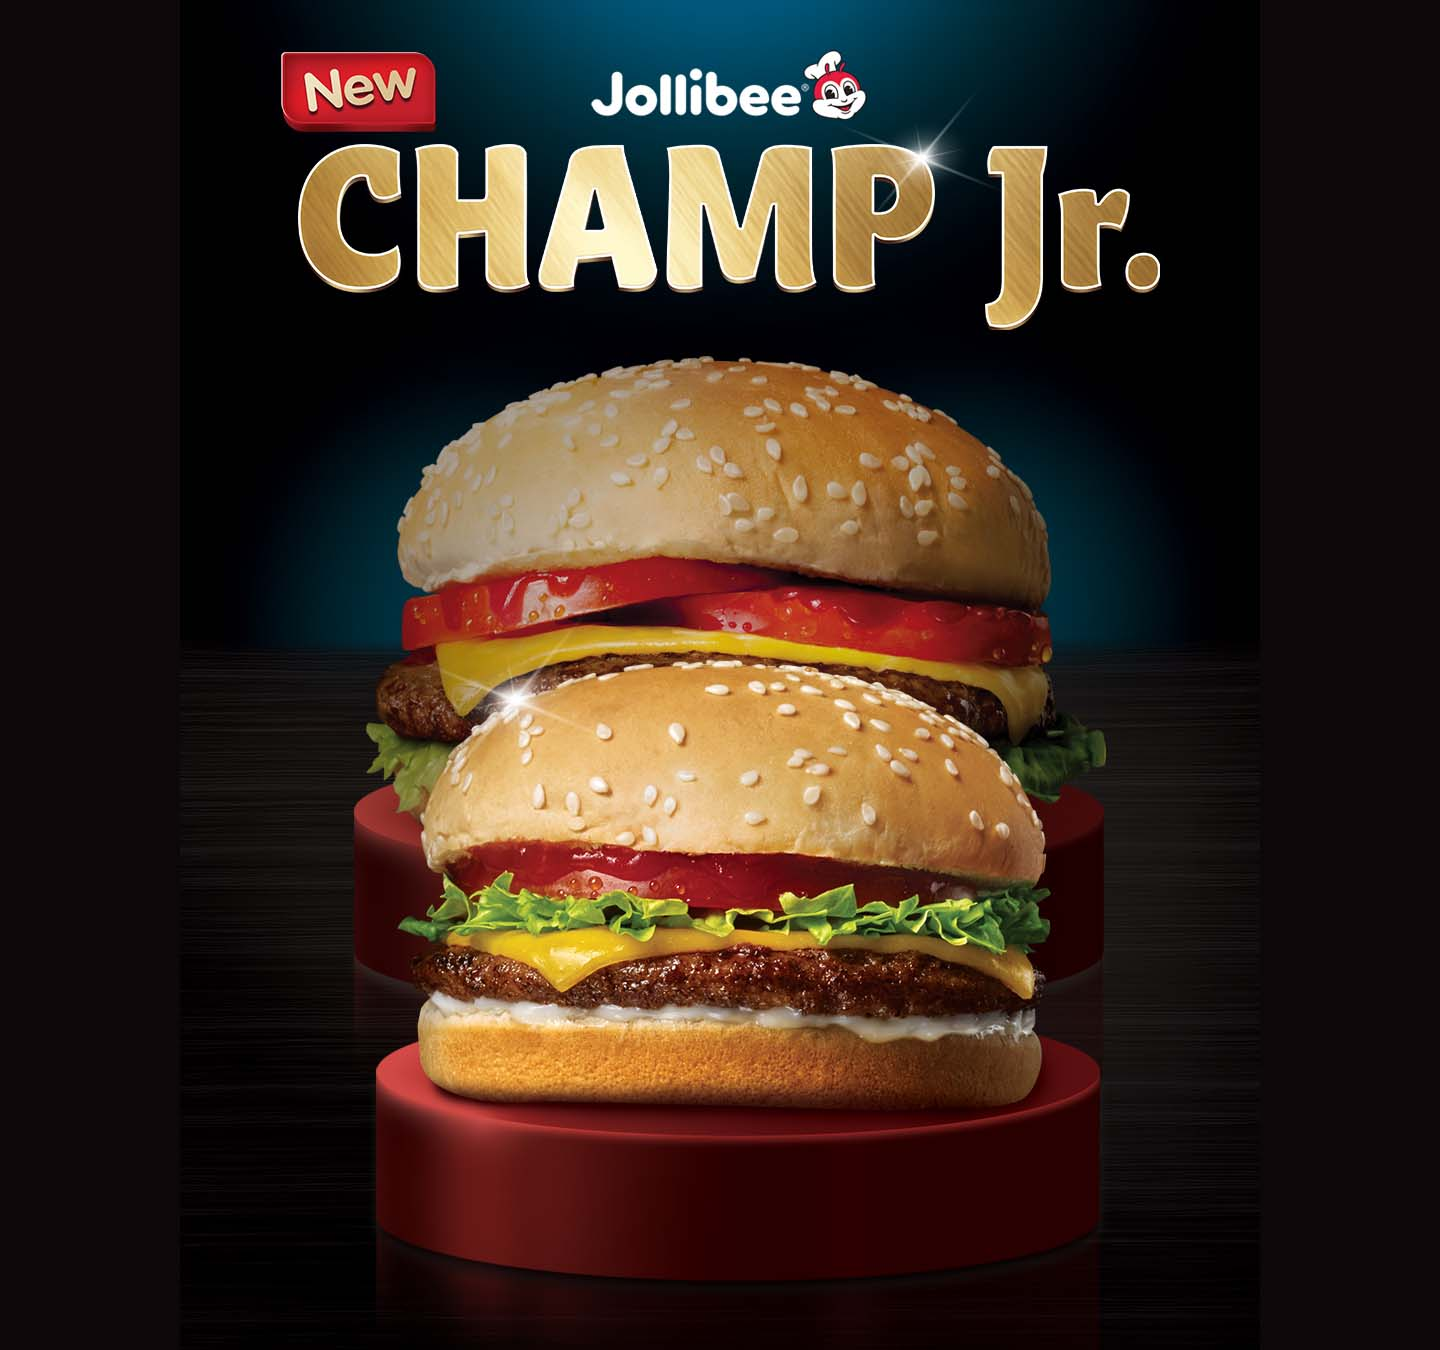 The different flavors of Jollibee Champ now available in more affordable Jr. sizes